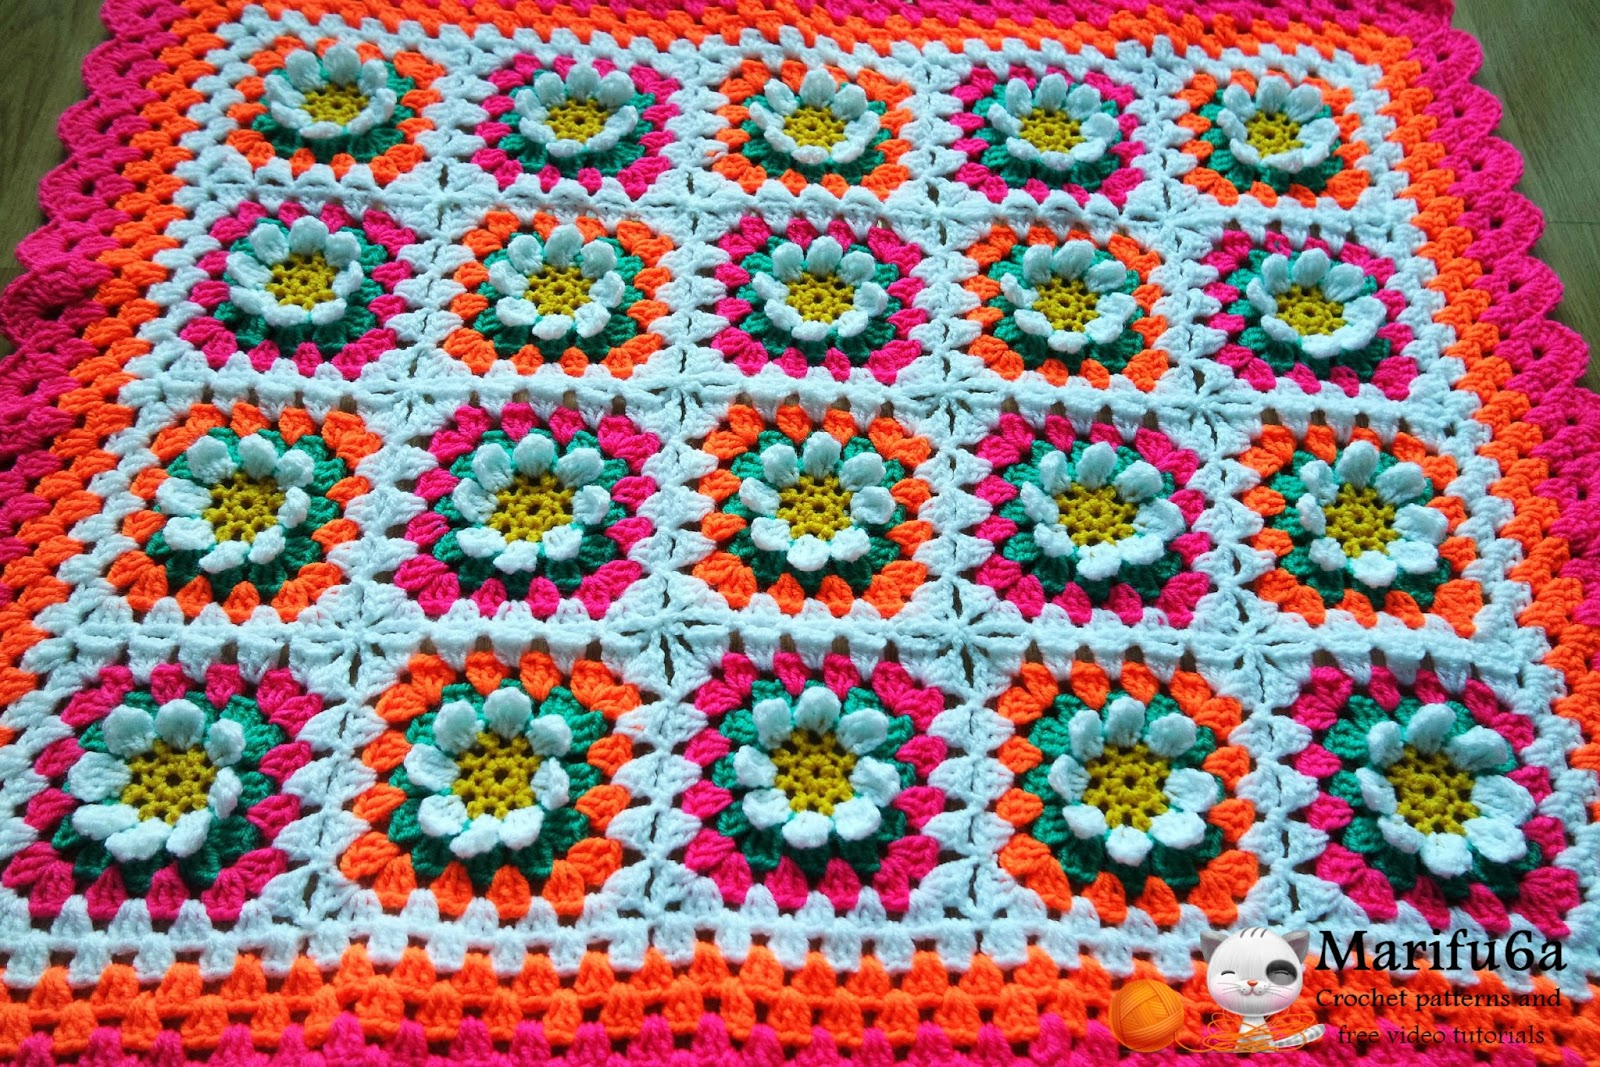 Crochet Patterns I Can Make And Sell : Free crochet patterns and video tutorials: Crochet pattern ?Flower ...